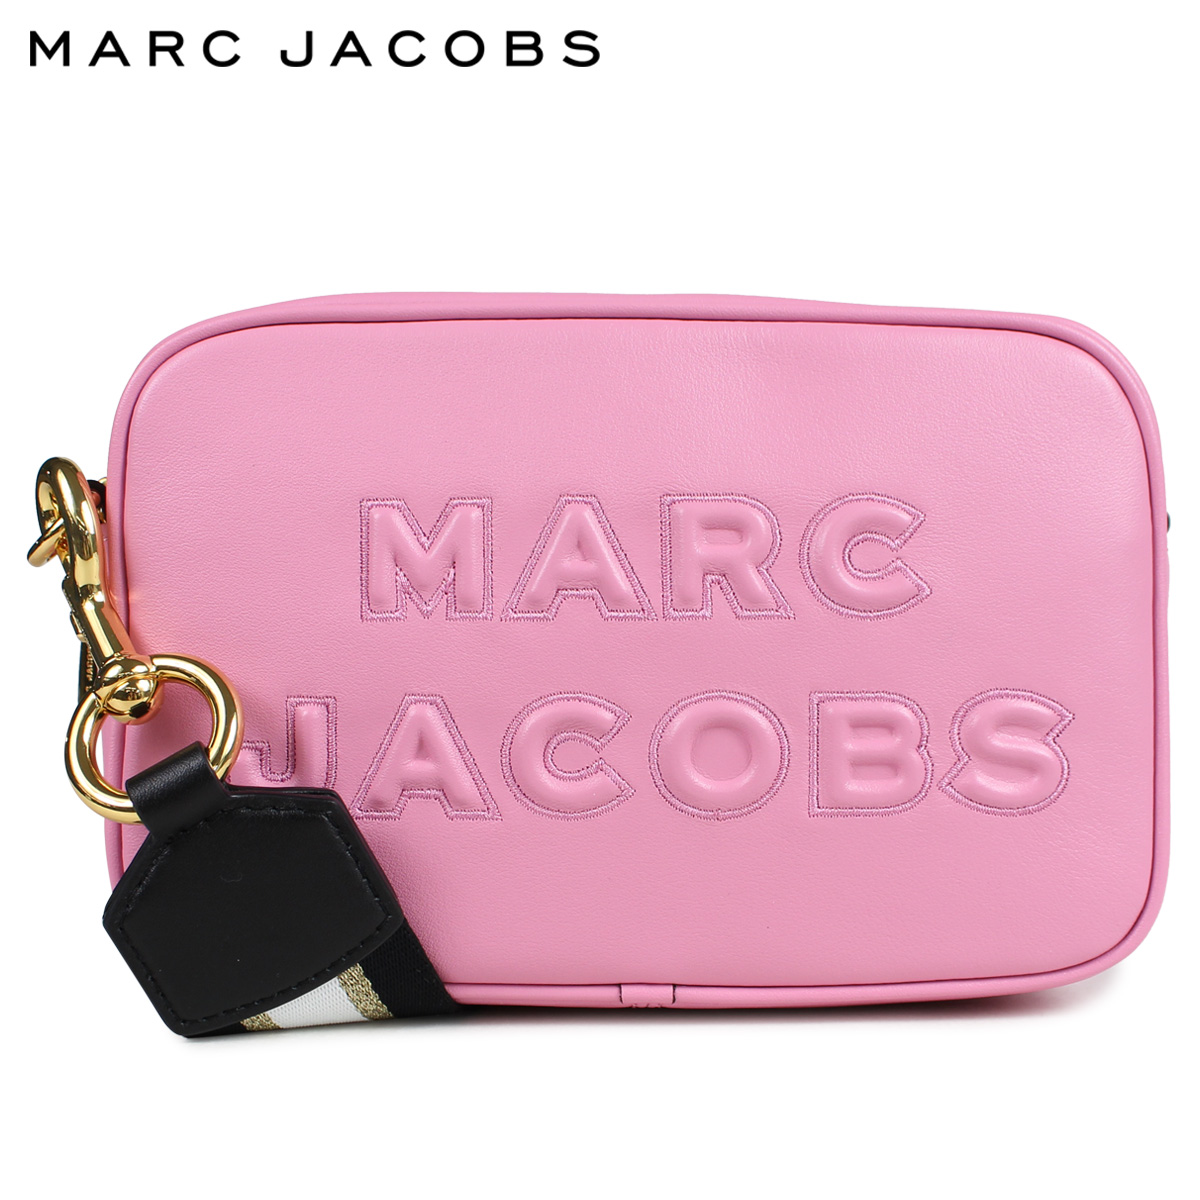 MARC JACOBS FLASH LEATHER CROSS BODY マークジェイコブス バッグ ショルダーバッグ レディース ピンク M0014465 660